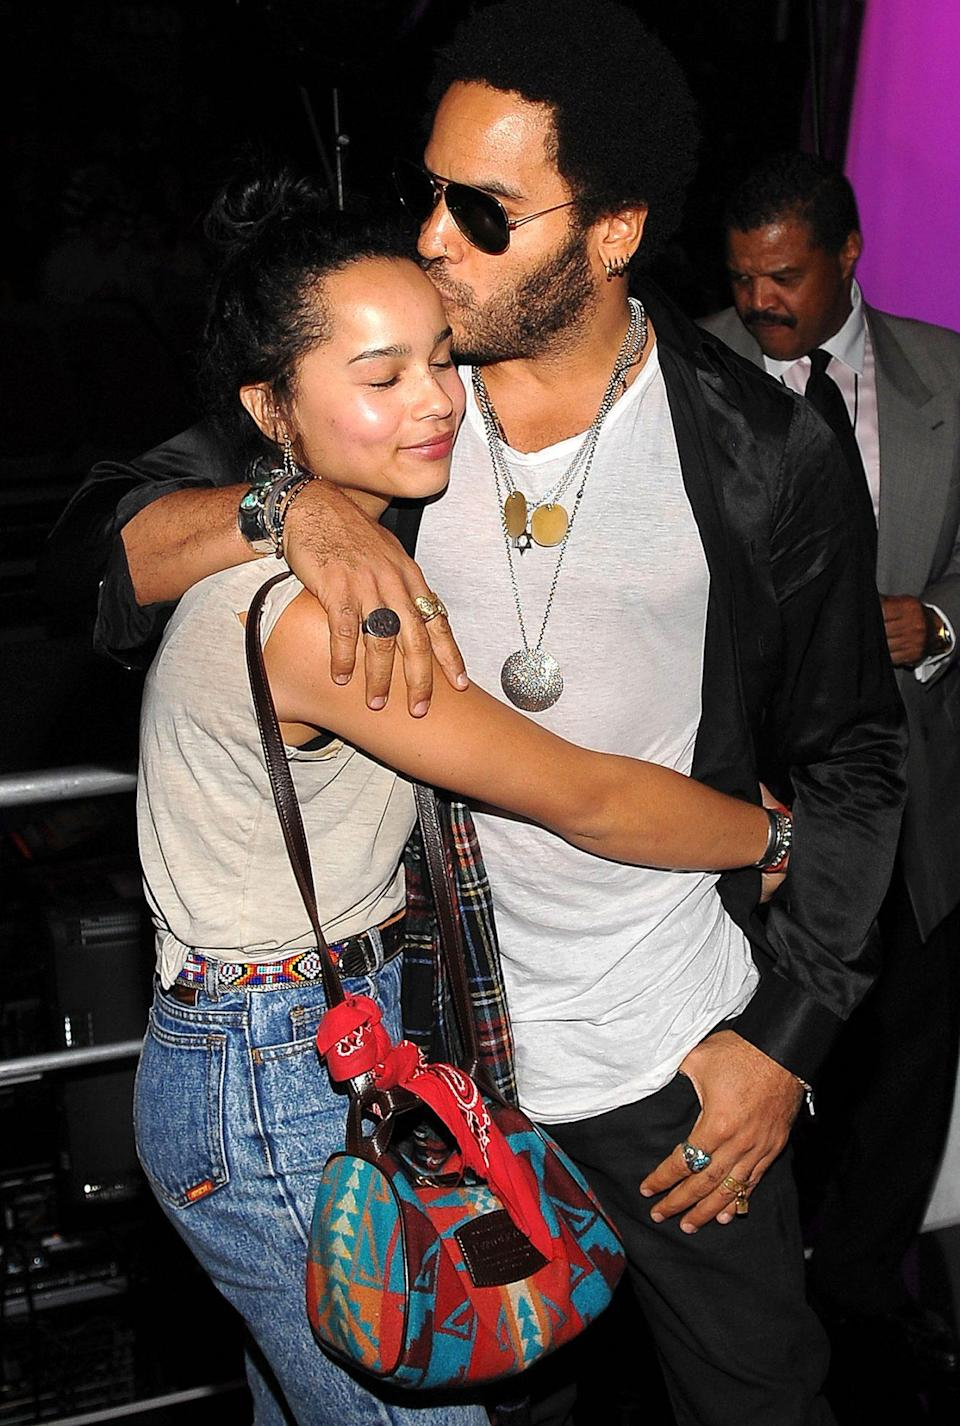 """<p>""""Zoë and I have a very open dialogue,"""" Lenny told <a href=""""https://people.com/music/lenny-kravitz-daughter-zoe-very-open-dialogue-talk-about-anything-exclusive/"""" rel=""""nofollow noopener"""" target=""""_blank"""" data-ylk=""""slk:PEOPLE"""" class=""""link rapid-noclick-resp"""">PEOPLE</a> of the tight bond he and his daughter share. """"We can talk about anything and everything.""""</p> <p>In fact, the musician said their relationship reminds him of the closeness his mother, <em>Jeffersons</em> actress Roxie Roker, had with her own father.</p> <p>""""So when I see the relationship between Zoë and myself, I see the relationship between my mother and my grandfather,"""" he said. """"It makes me very happy that we've elevated to that level.""""</p>"""